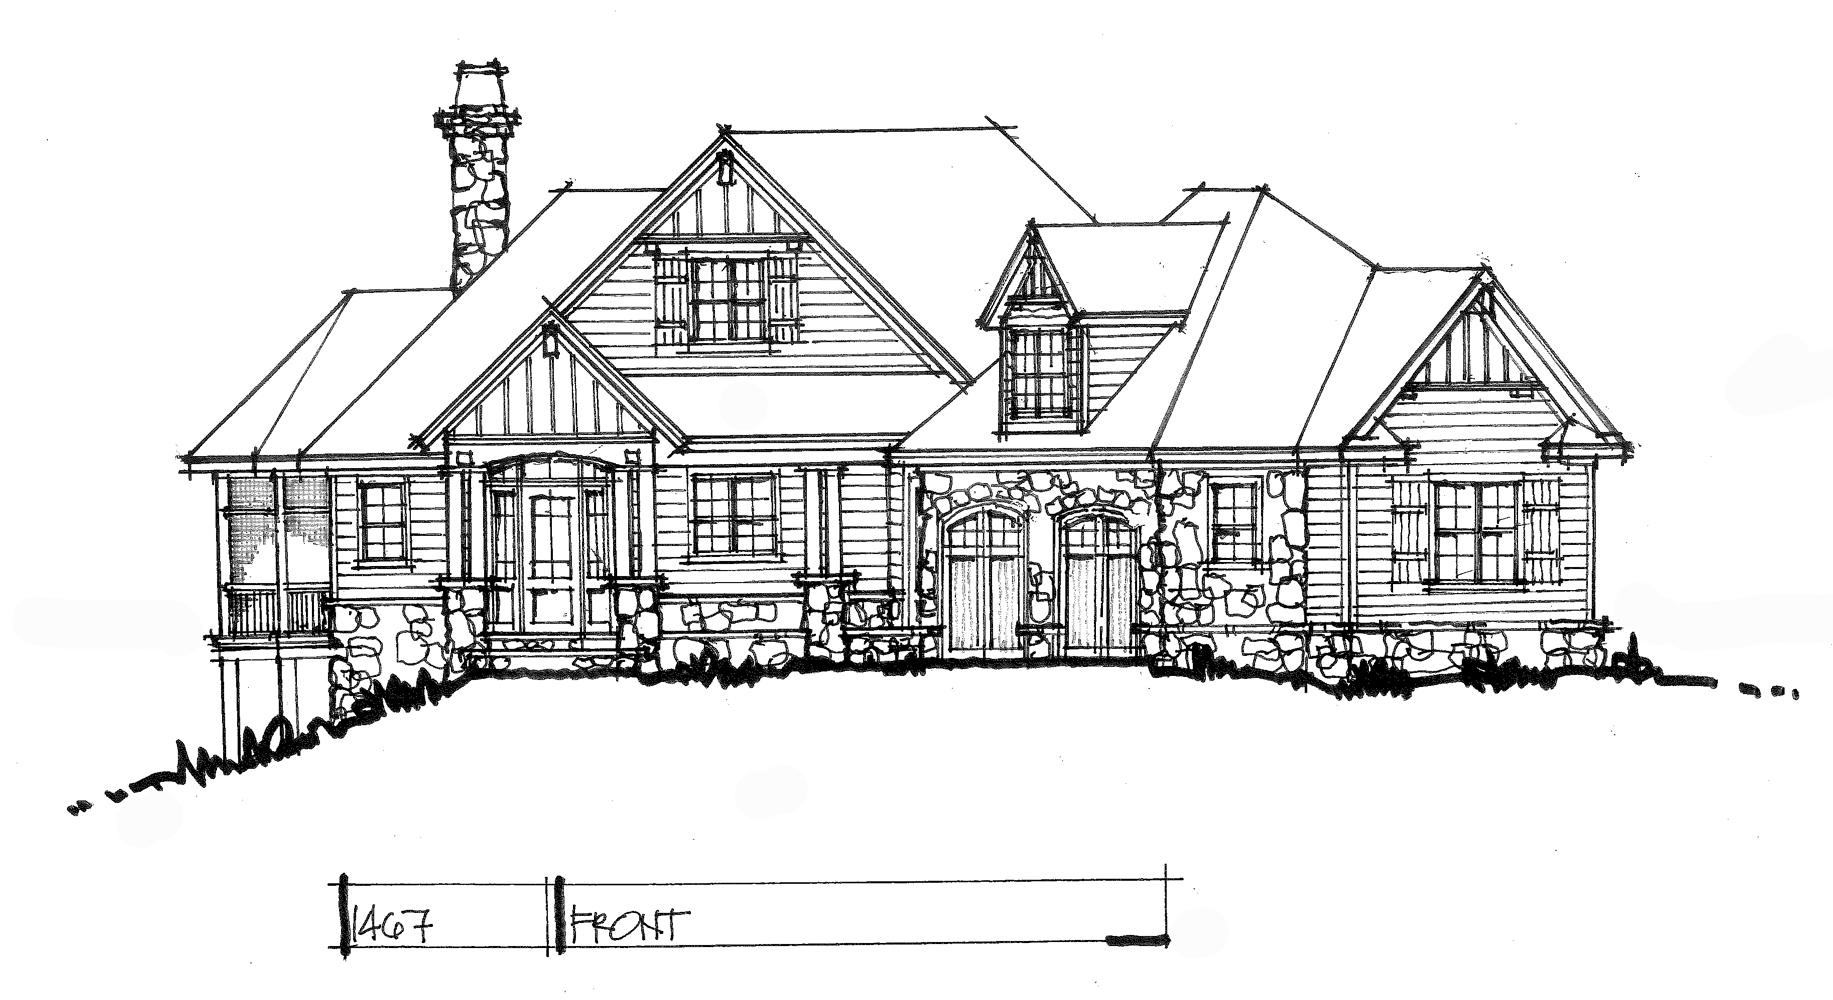 Check out the front rendering of house plan 1467.